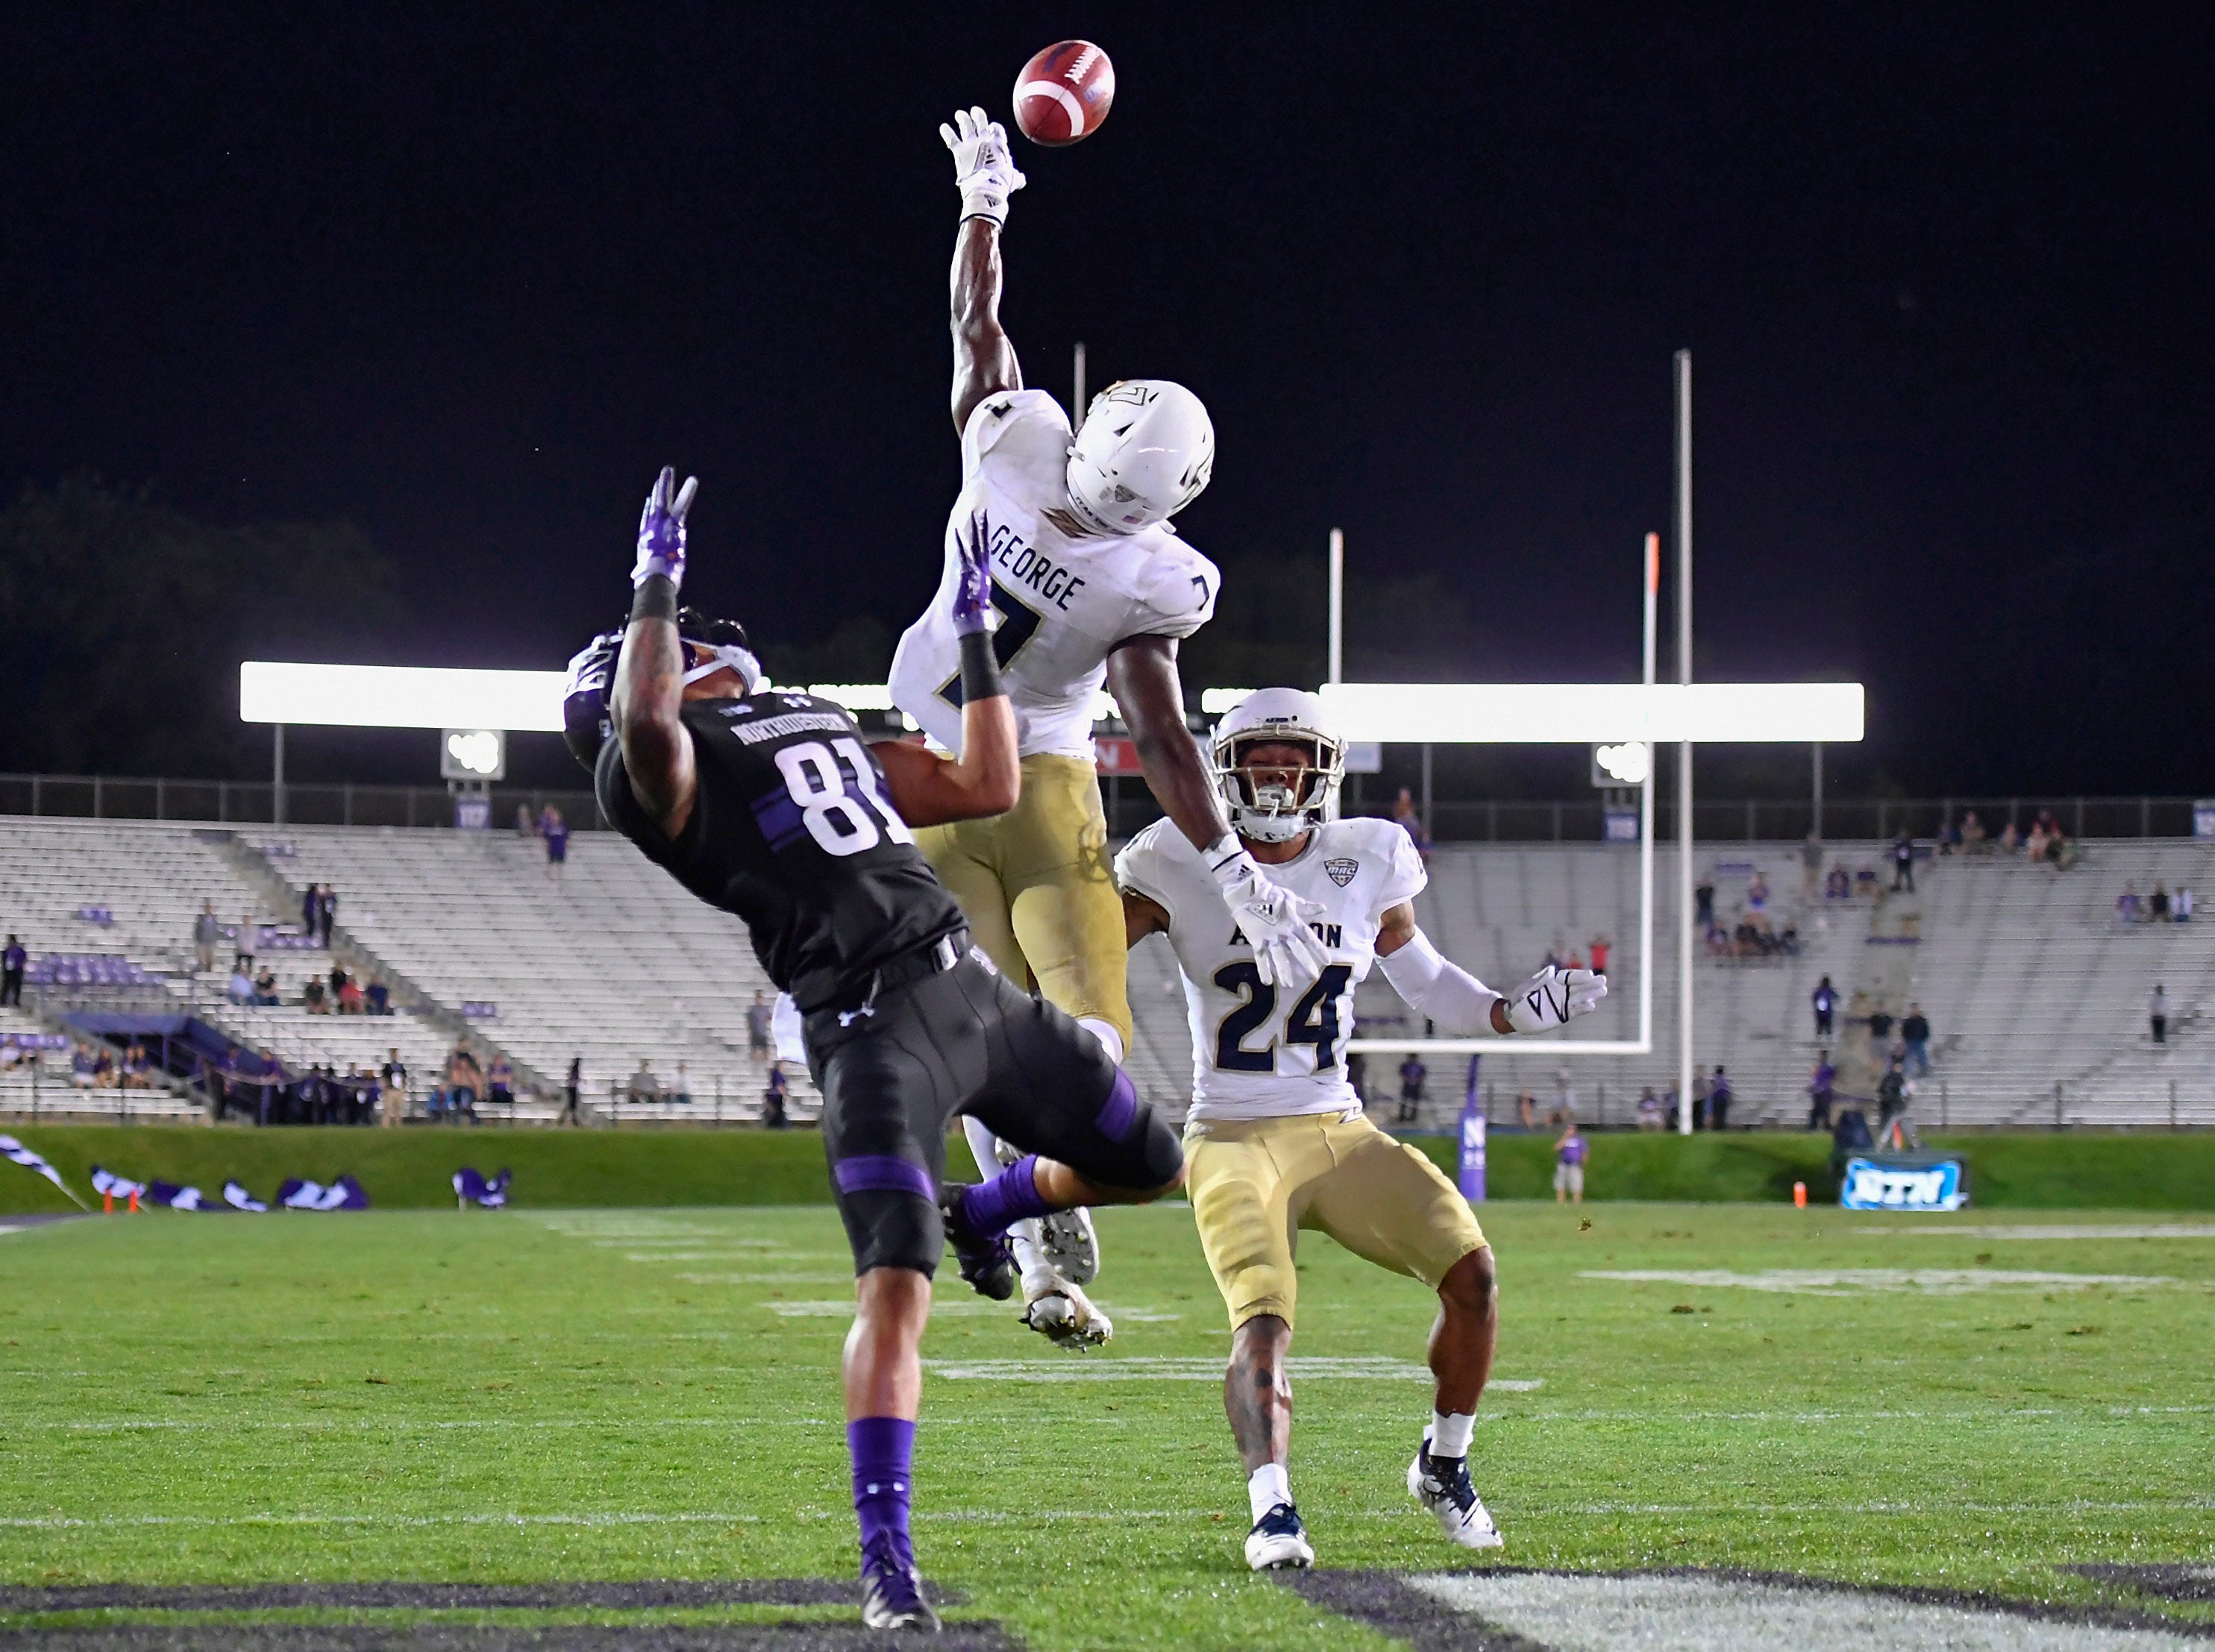 Akron Zips defensive back Jordan George (7) deflects the pass intended for Northwestern Wildcats wide receiver Ramaud Chiaokhiao-Bowman (81) at Ryan Field.